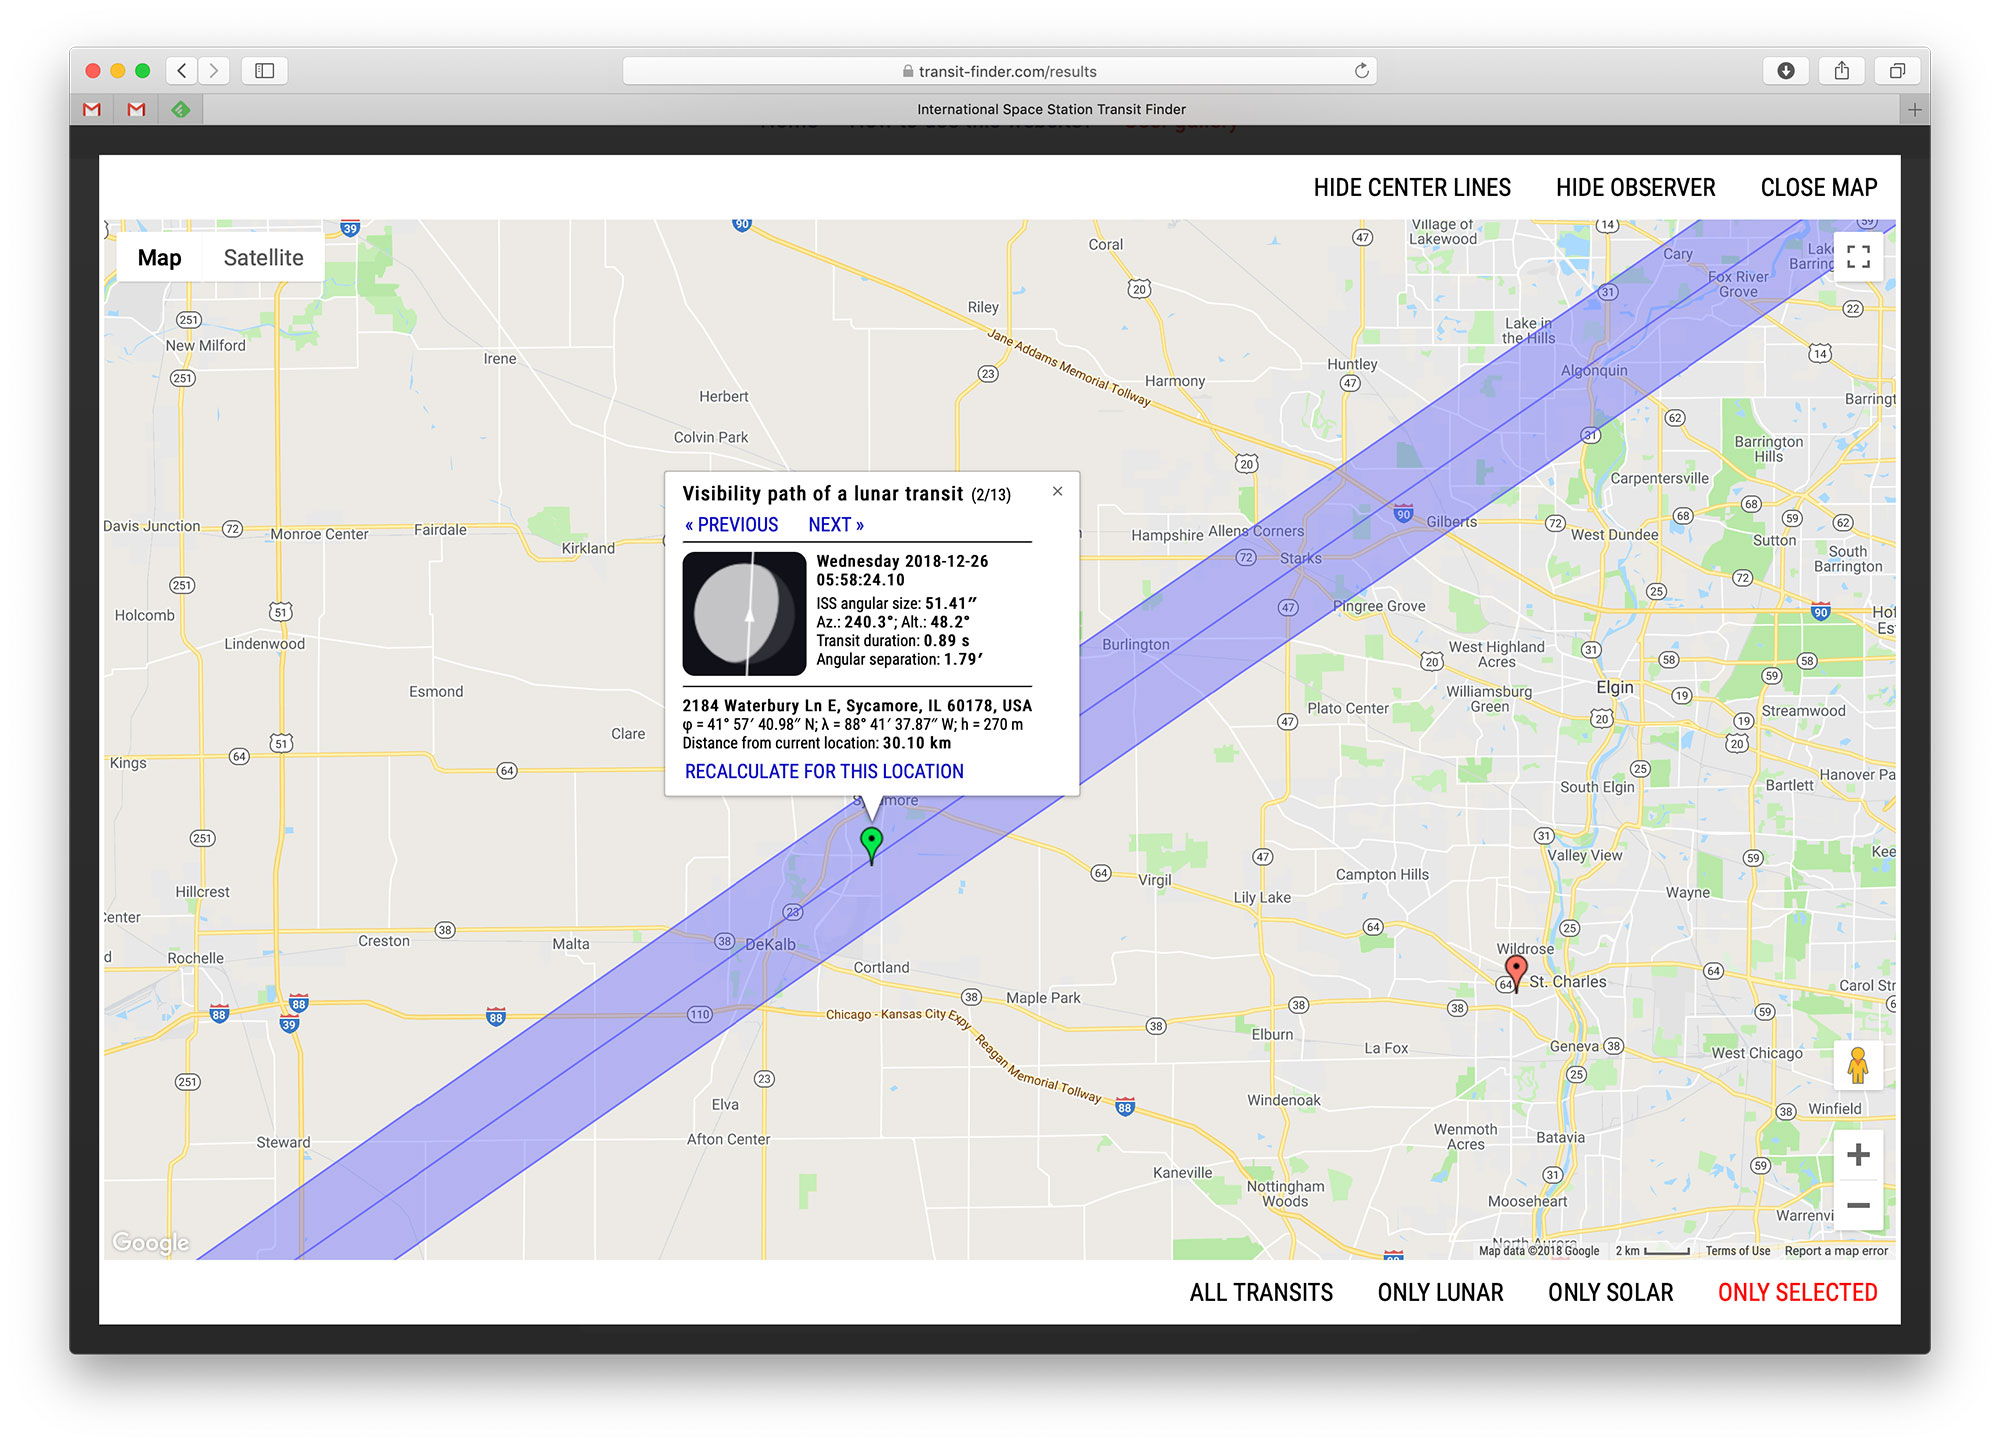 Using the transit finder tool to plot another ISS capture